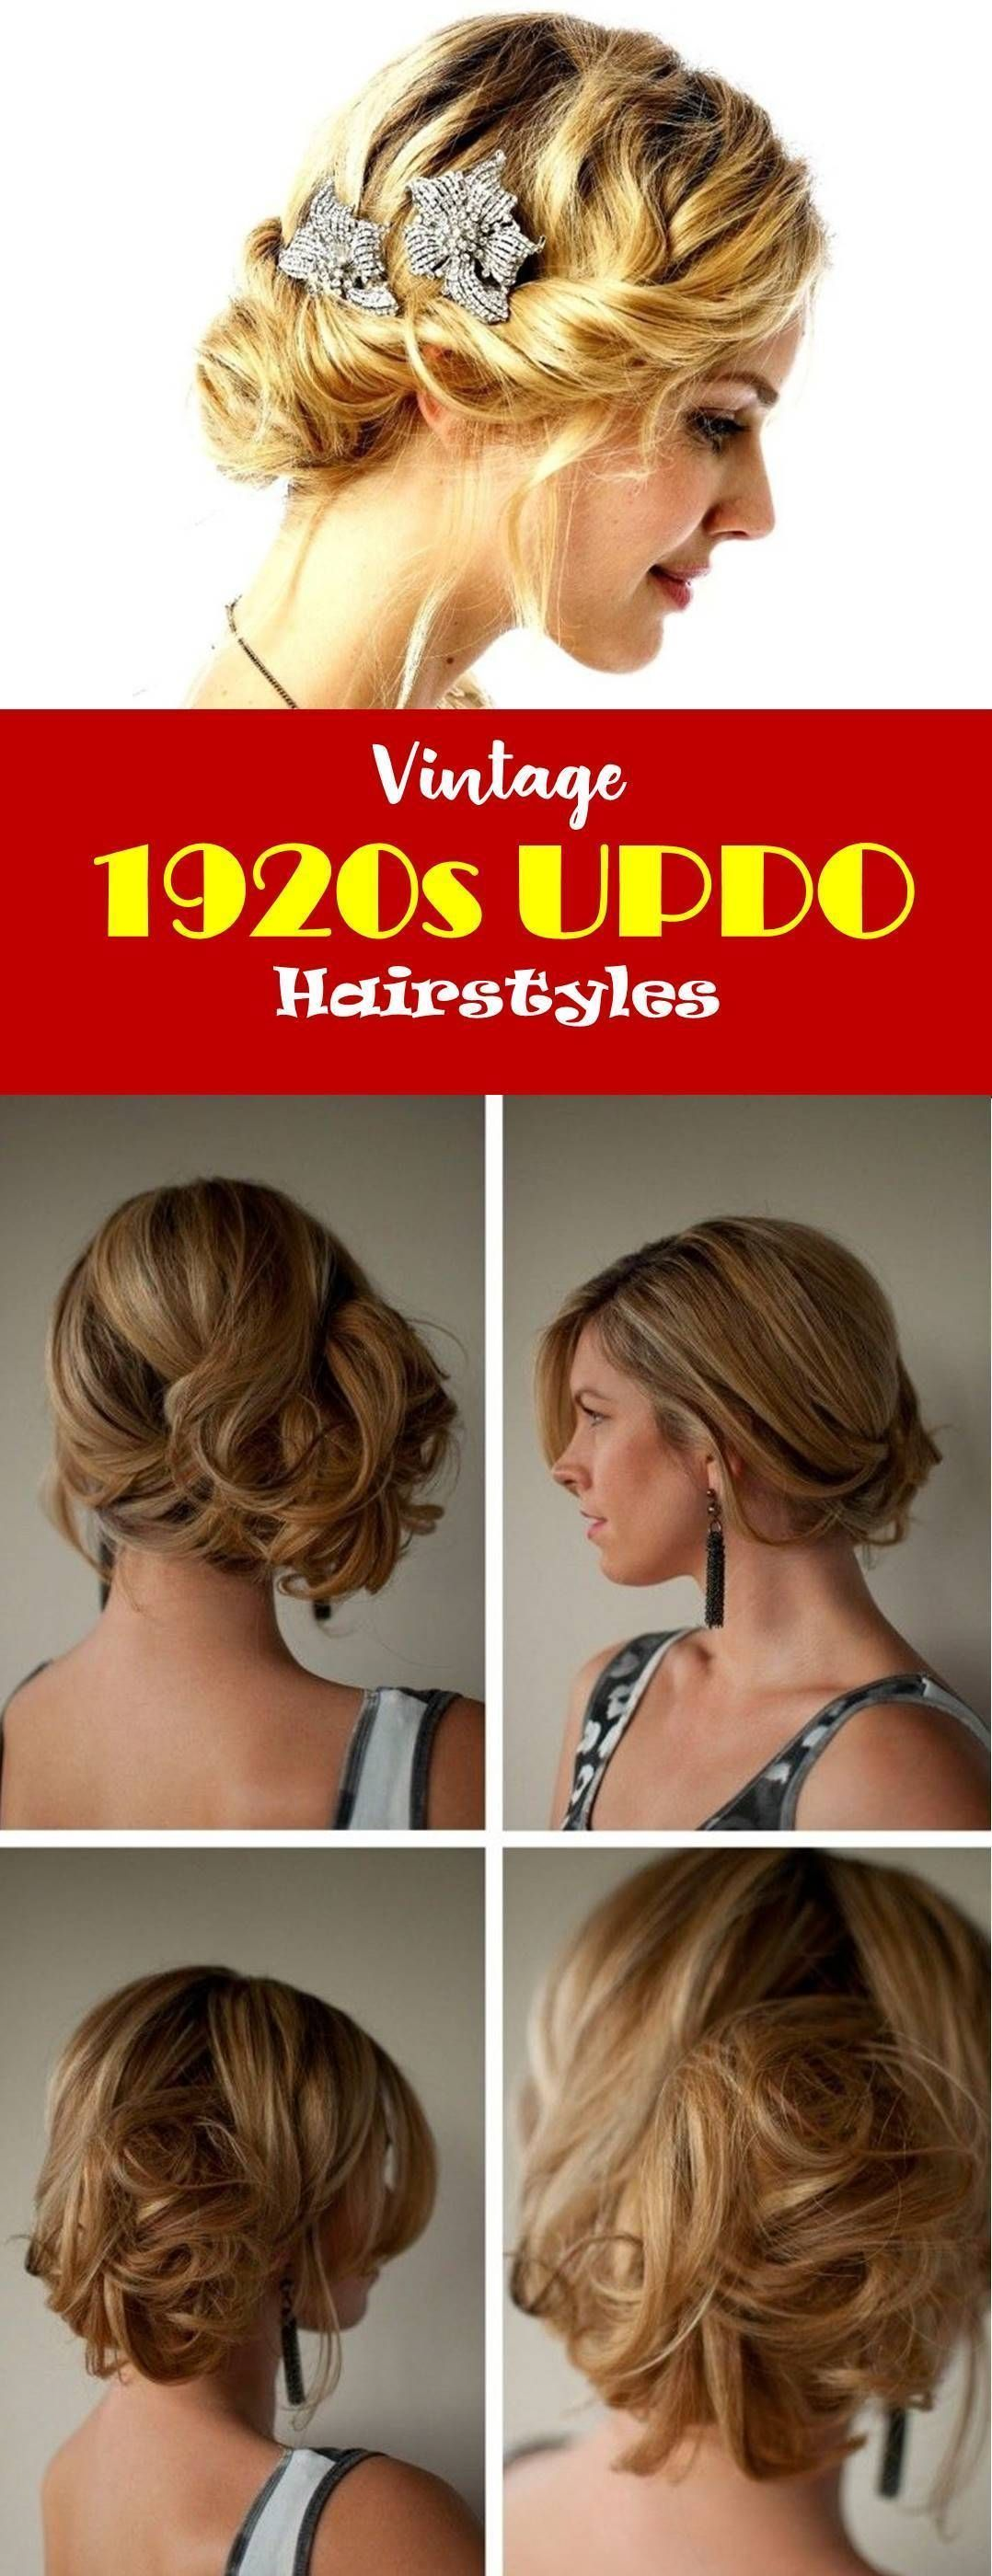 Hairstyles For Long Hair Top Vintage 1920 S Updo 1920slonghair Hairstyles For Long Hair Top Vintage 1920 S Updo Hairstyles Updo 1920s Hairtop 1920slonghai Long Hair Styles Hair Styles 1920s Long Hair